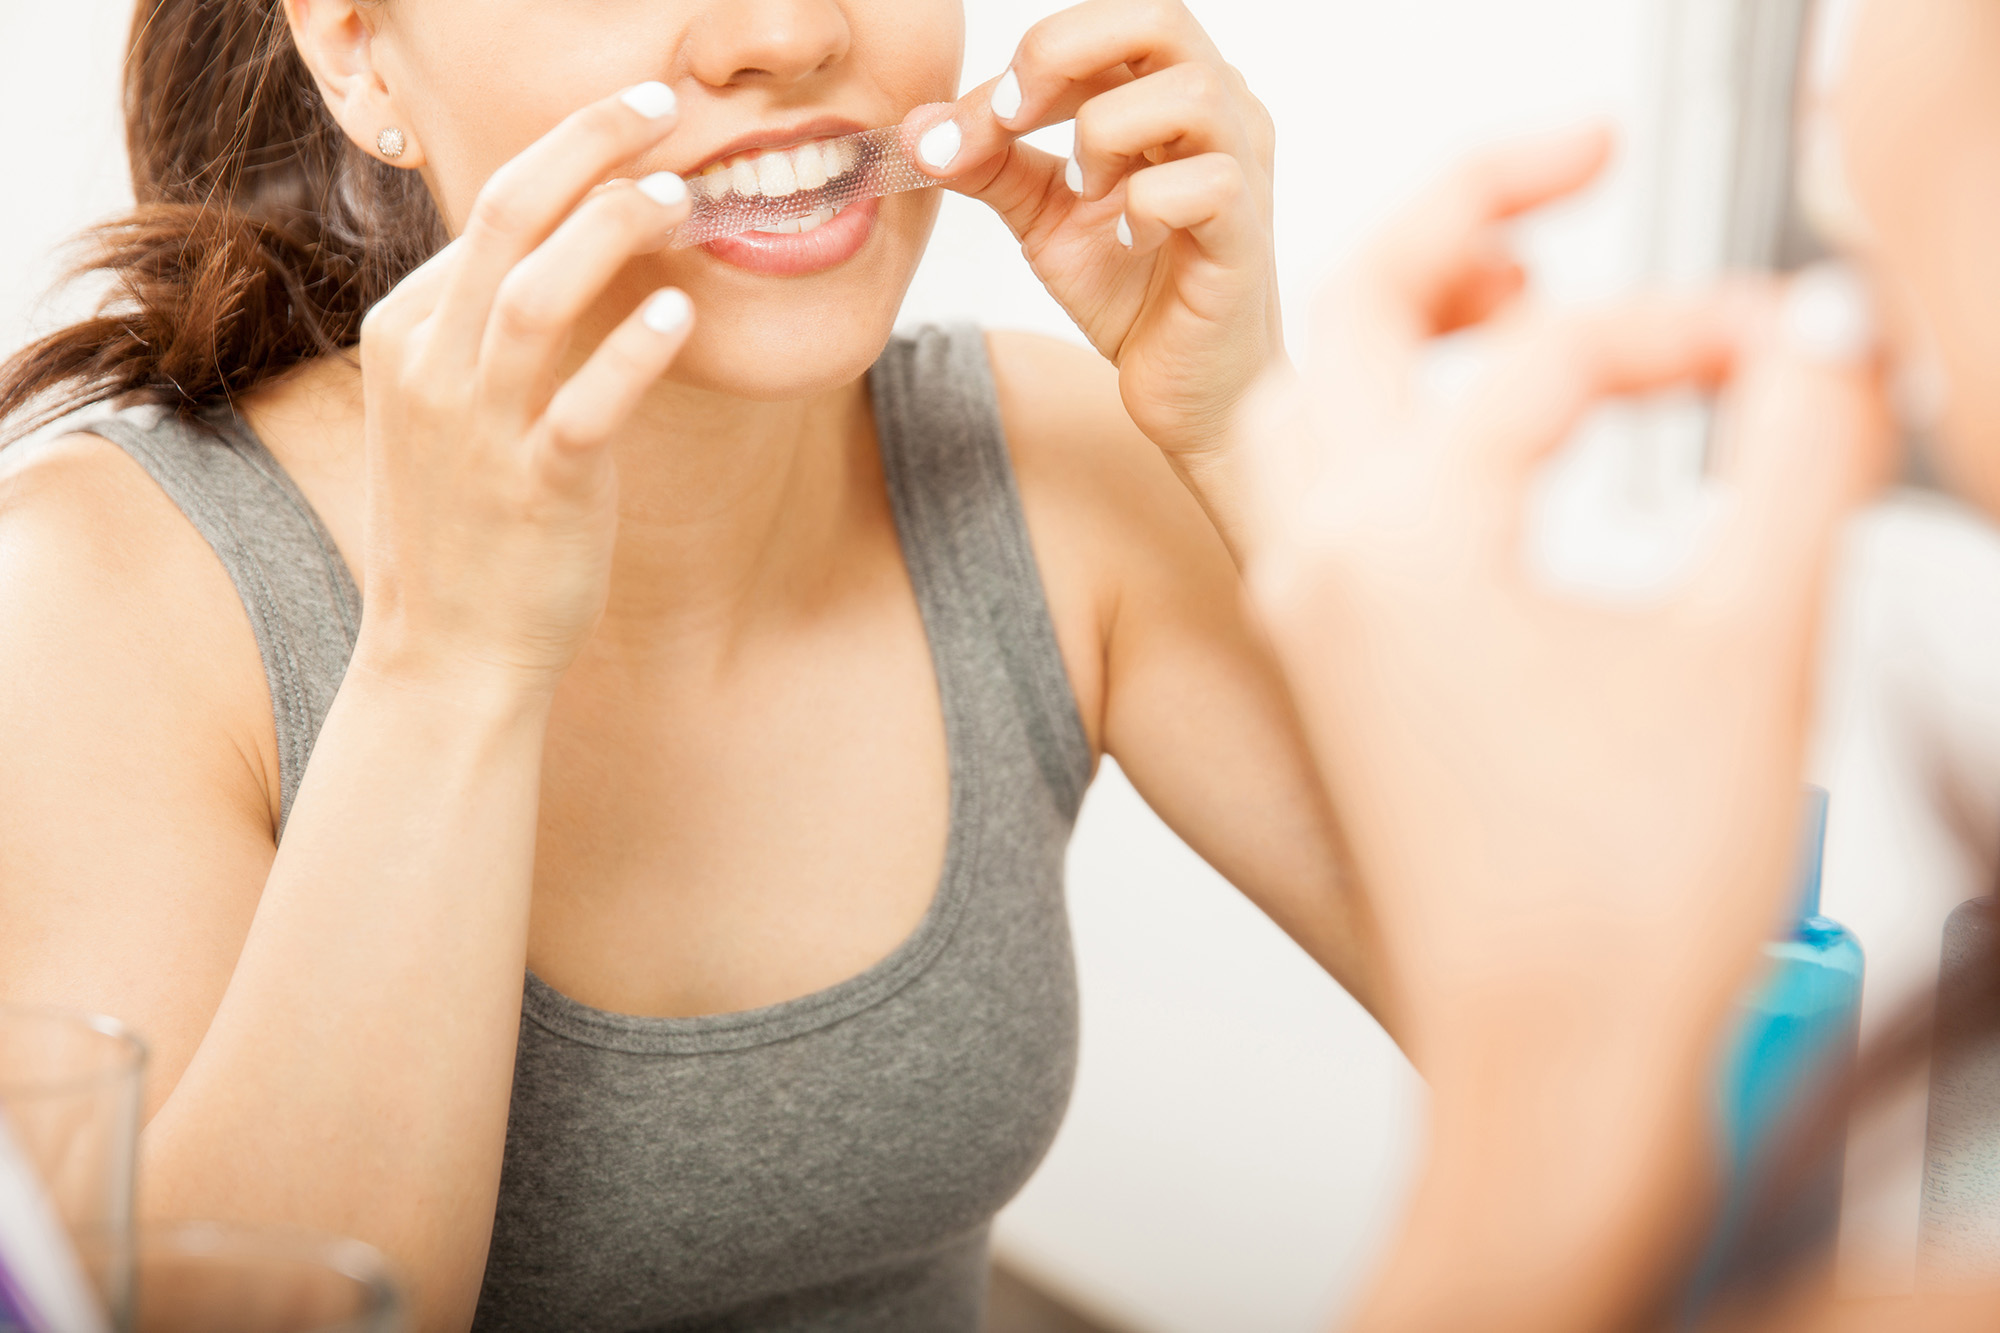 Whitening Strips Could Be Doing Serious Damage To Your Teeth